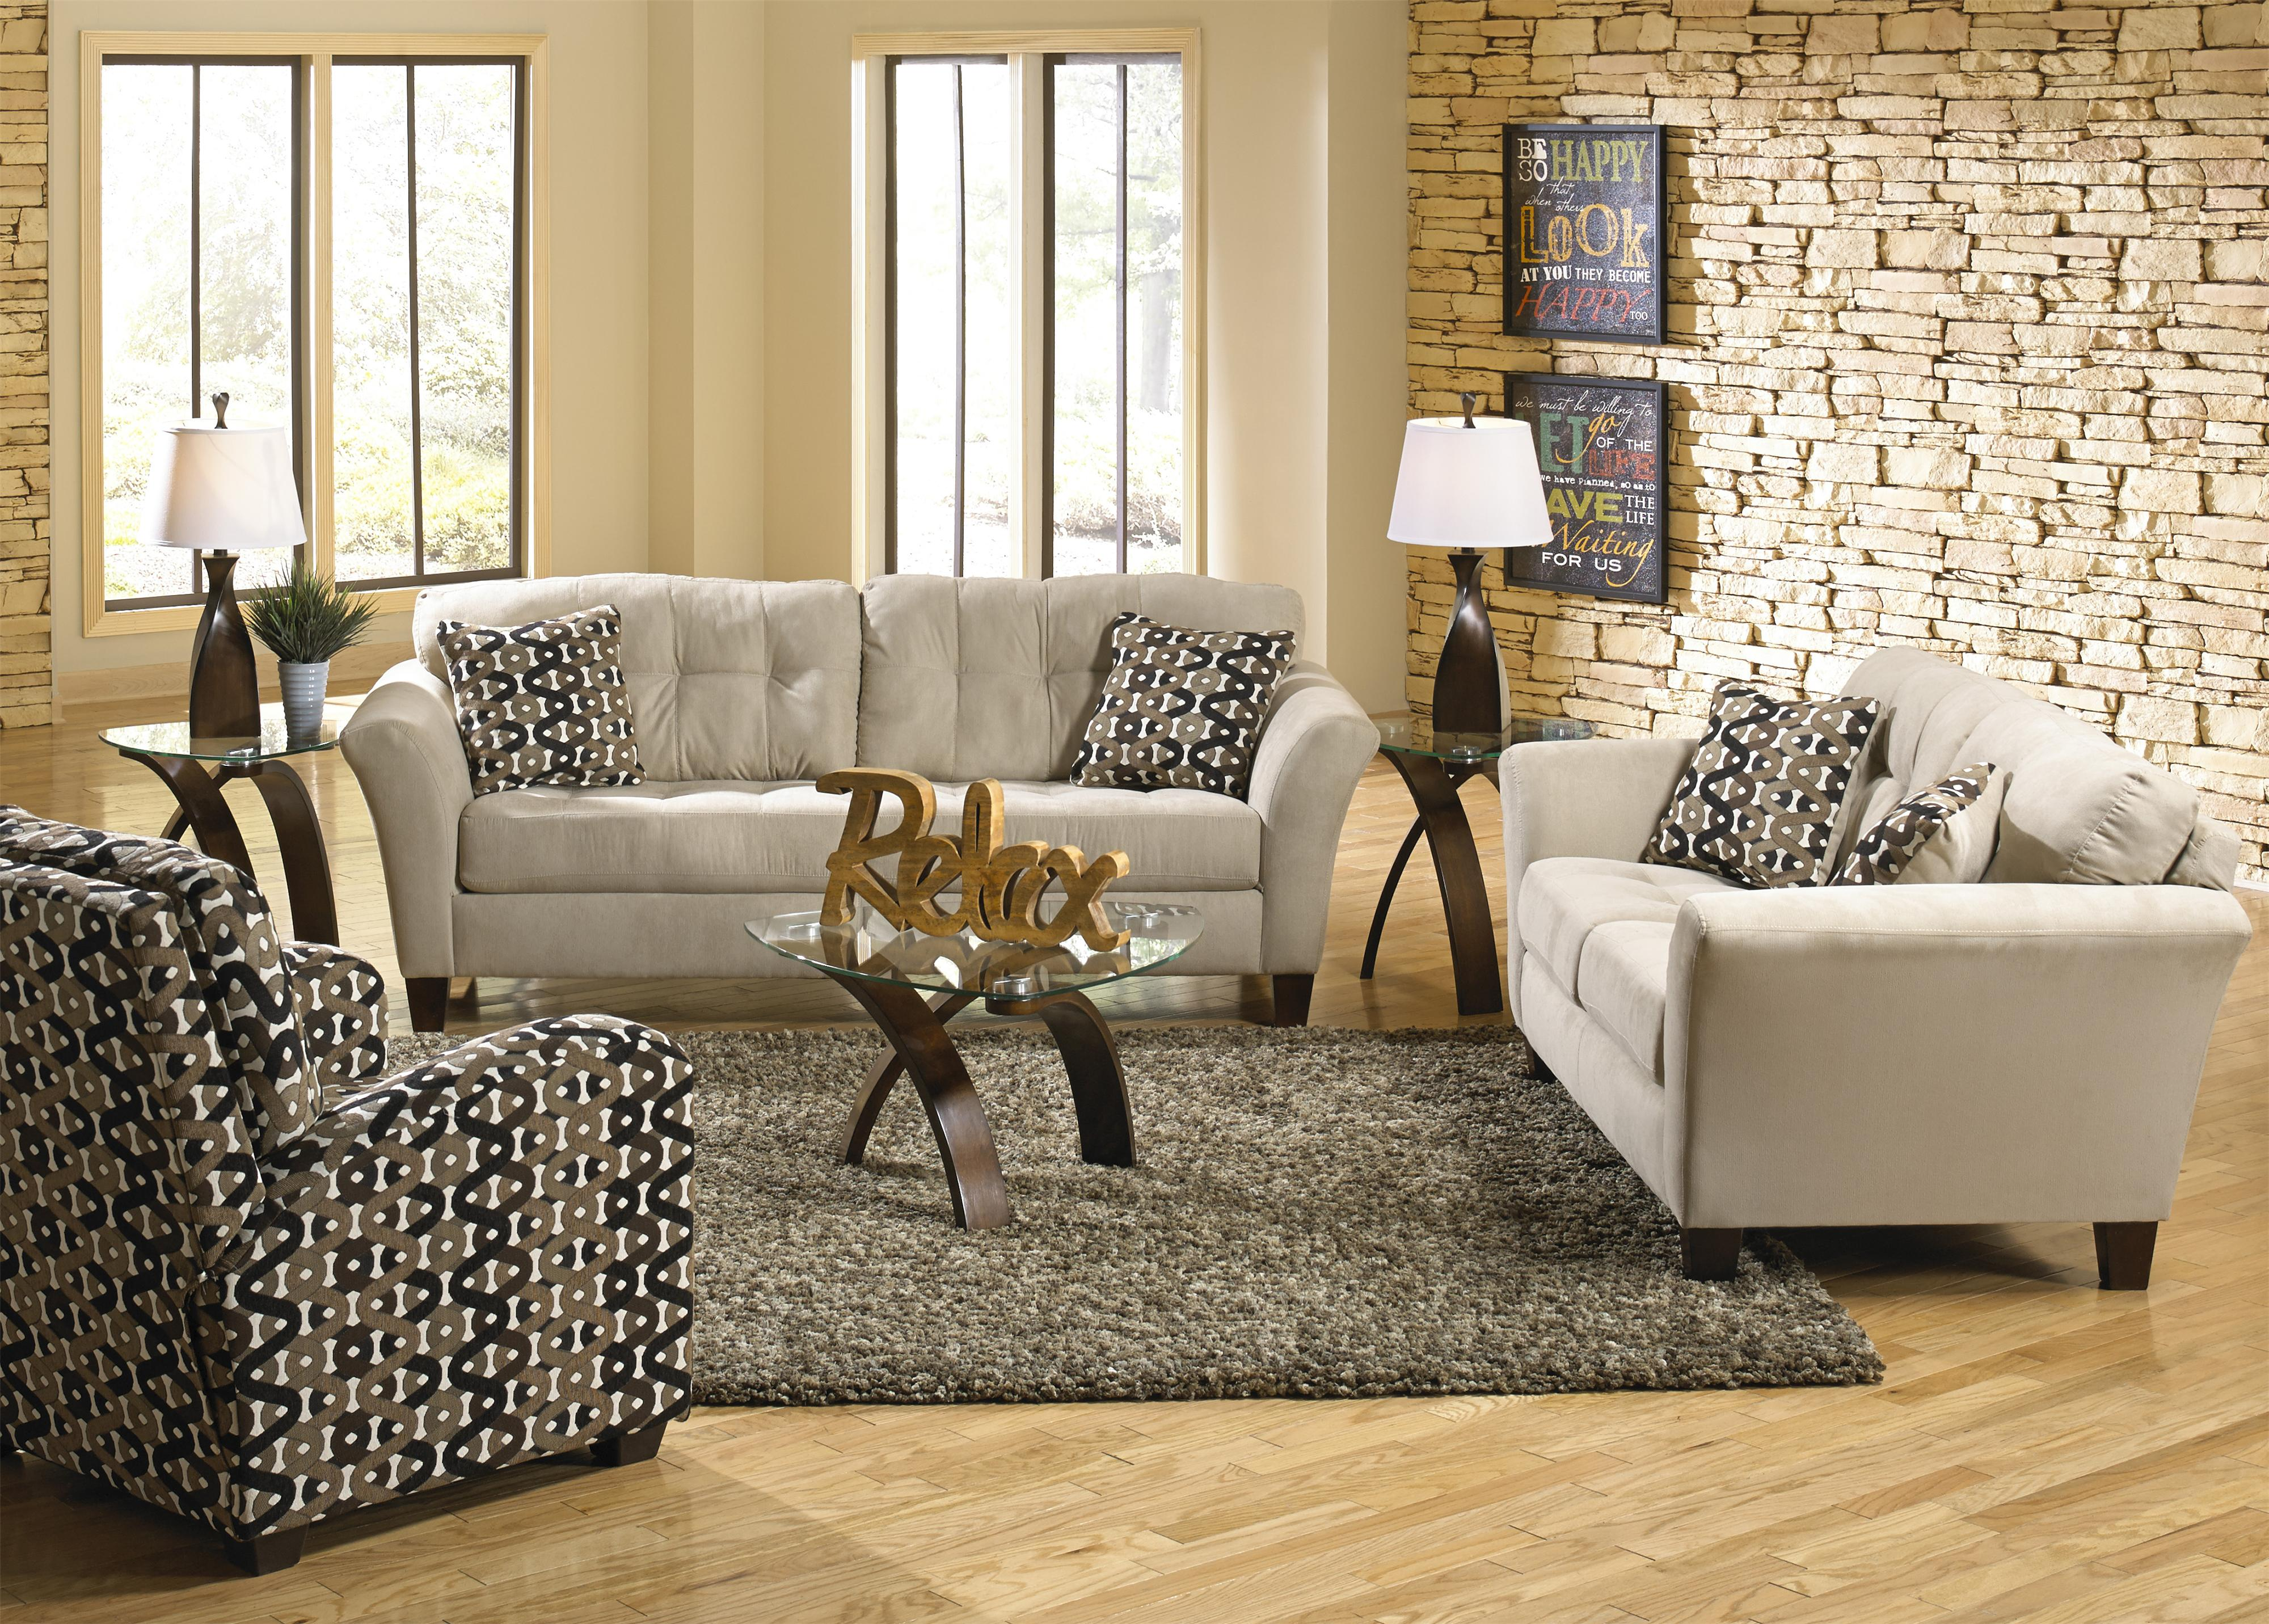 Jackson Furniture Halle Stationary Living Room Group - Item Number: 4381 Living Room Group 3